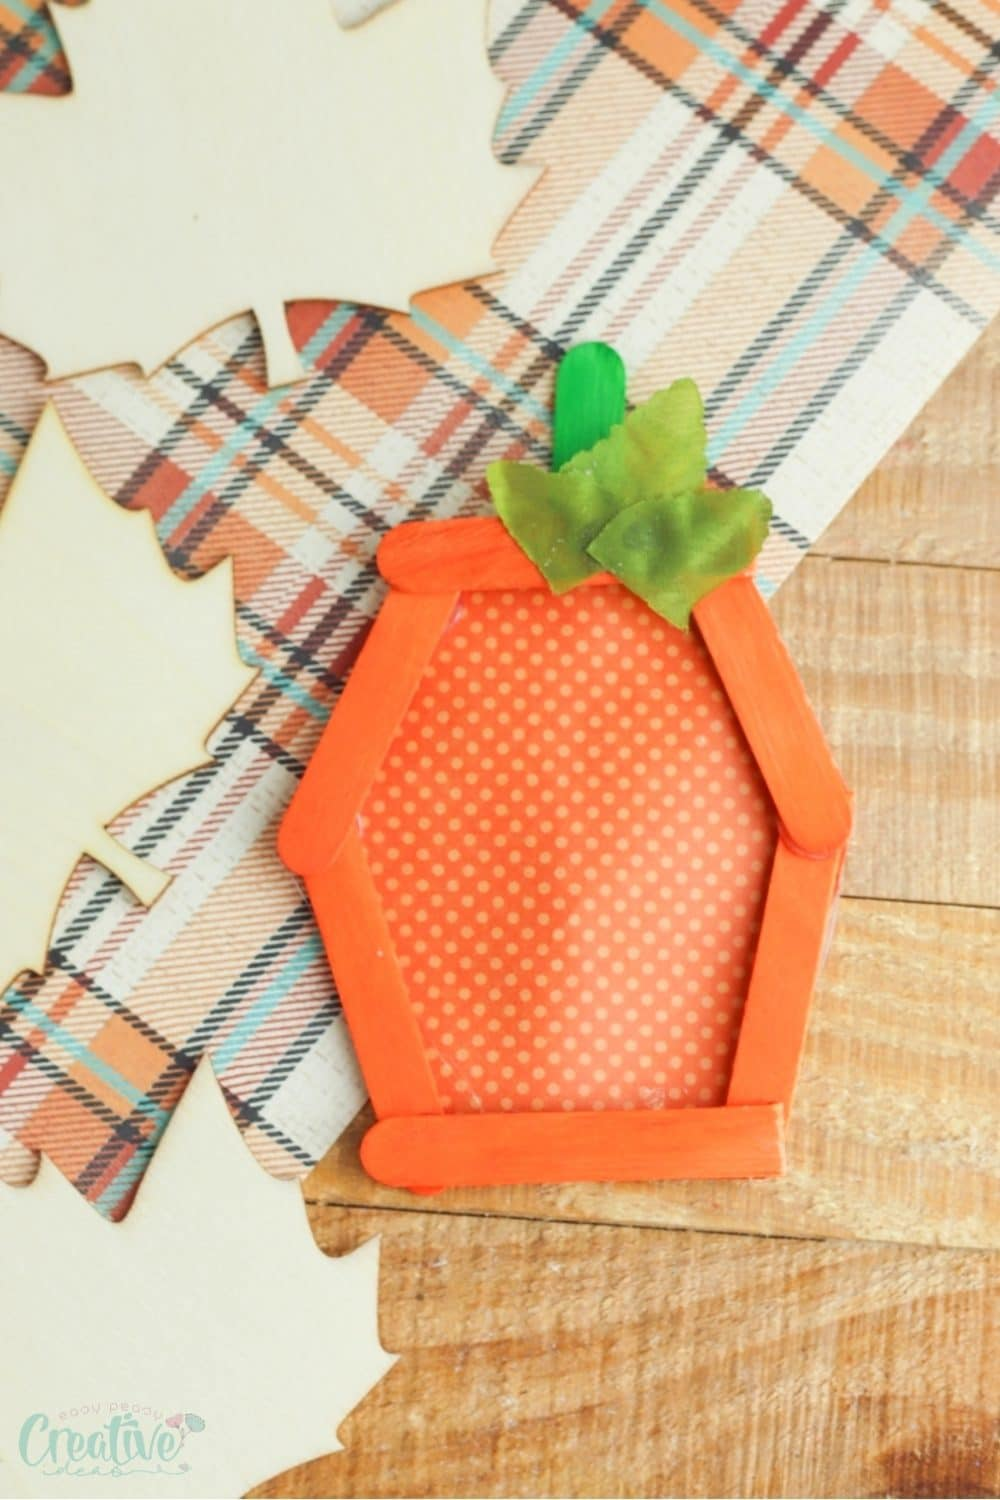 Image of pumpkin craft for kids made with popsicle sticks and paper